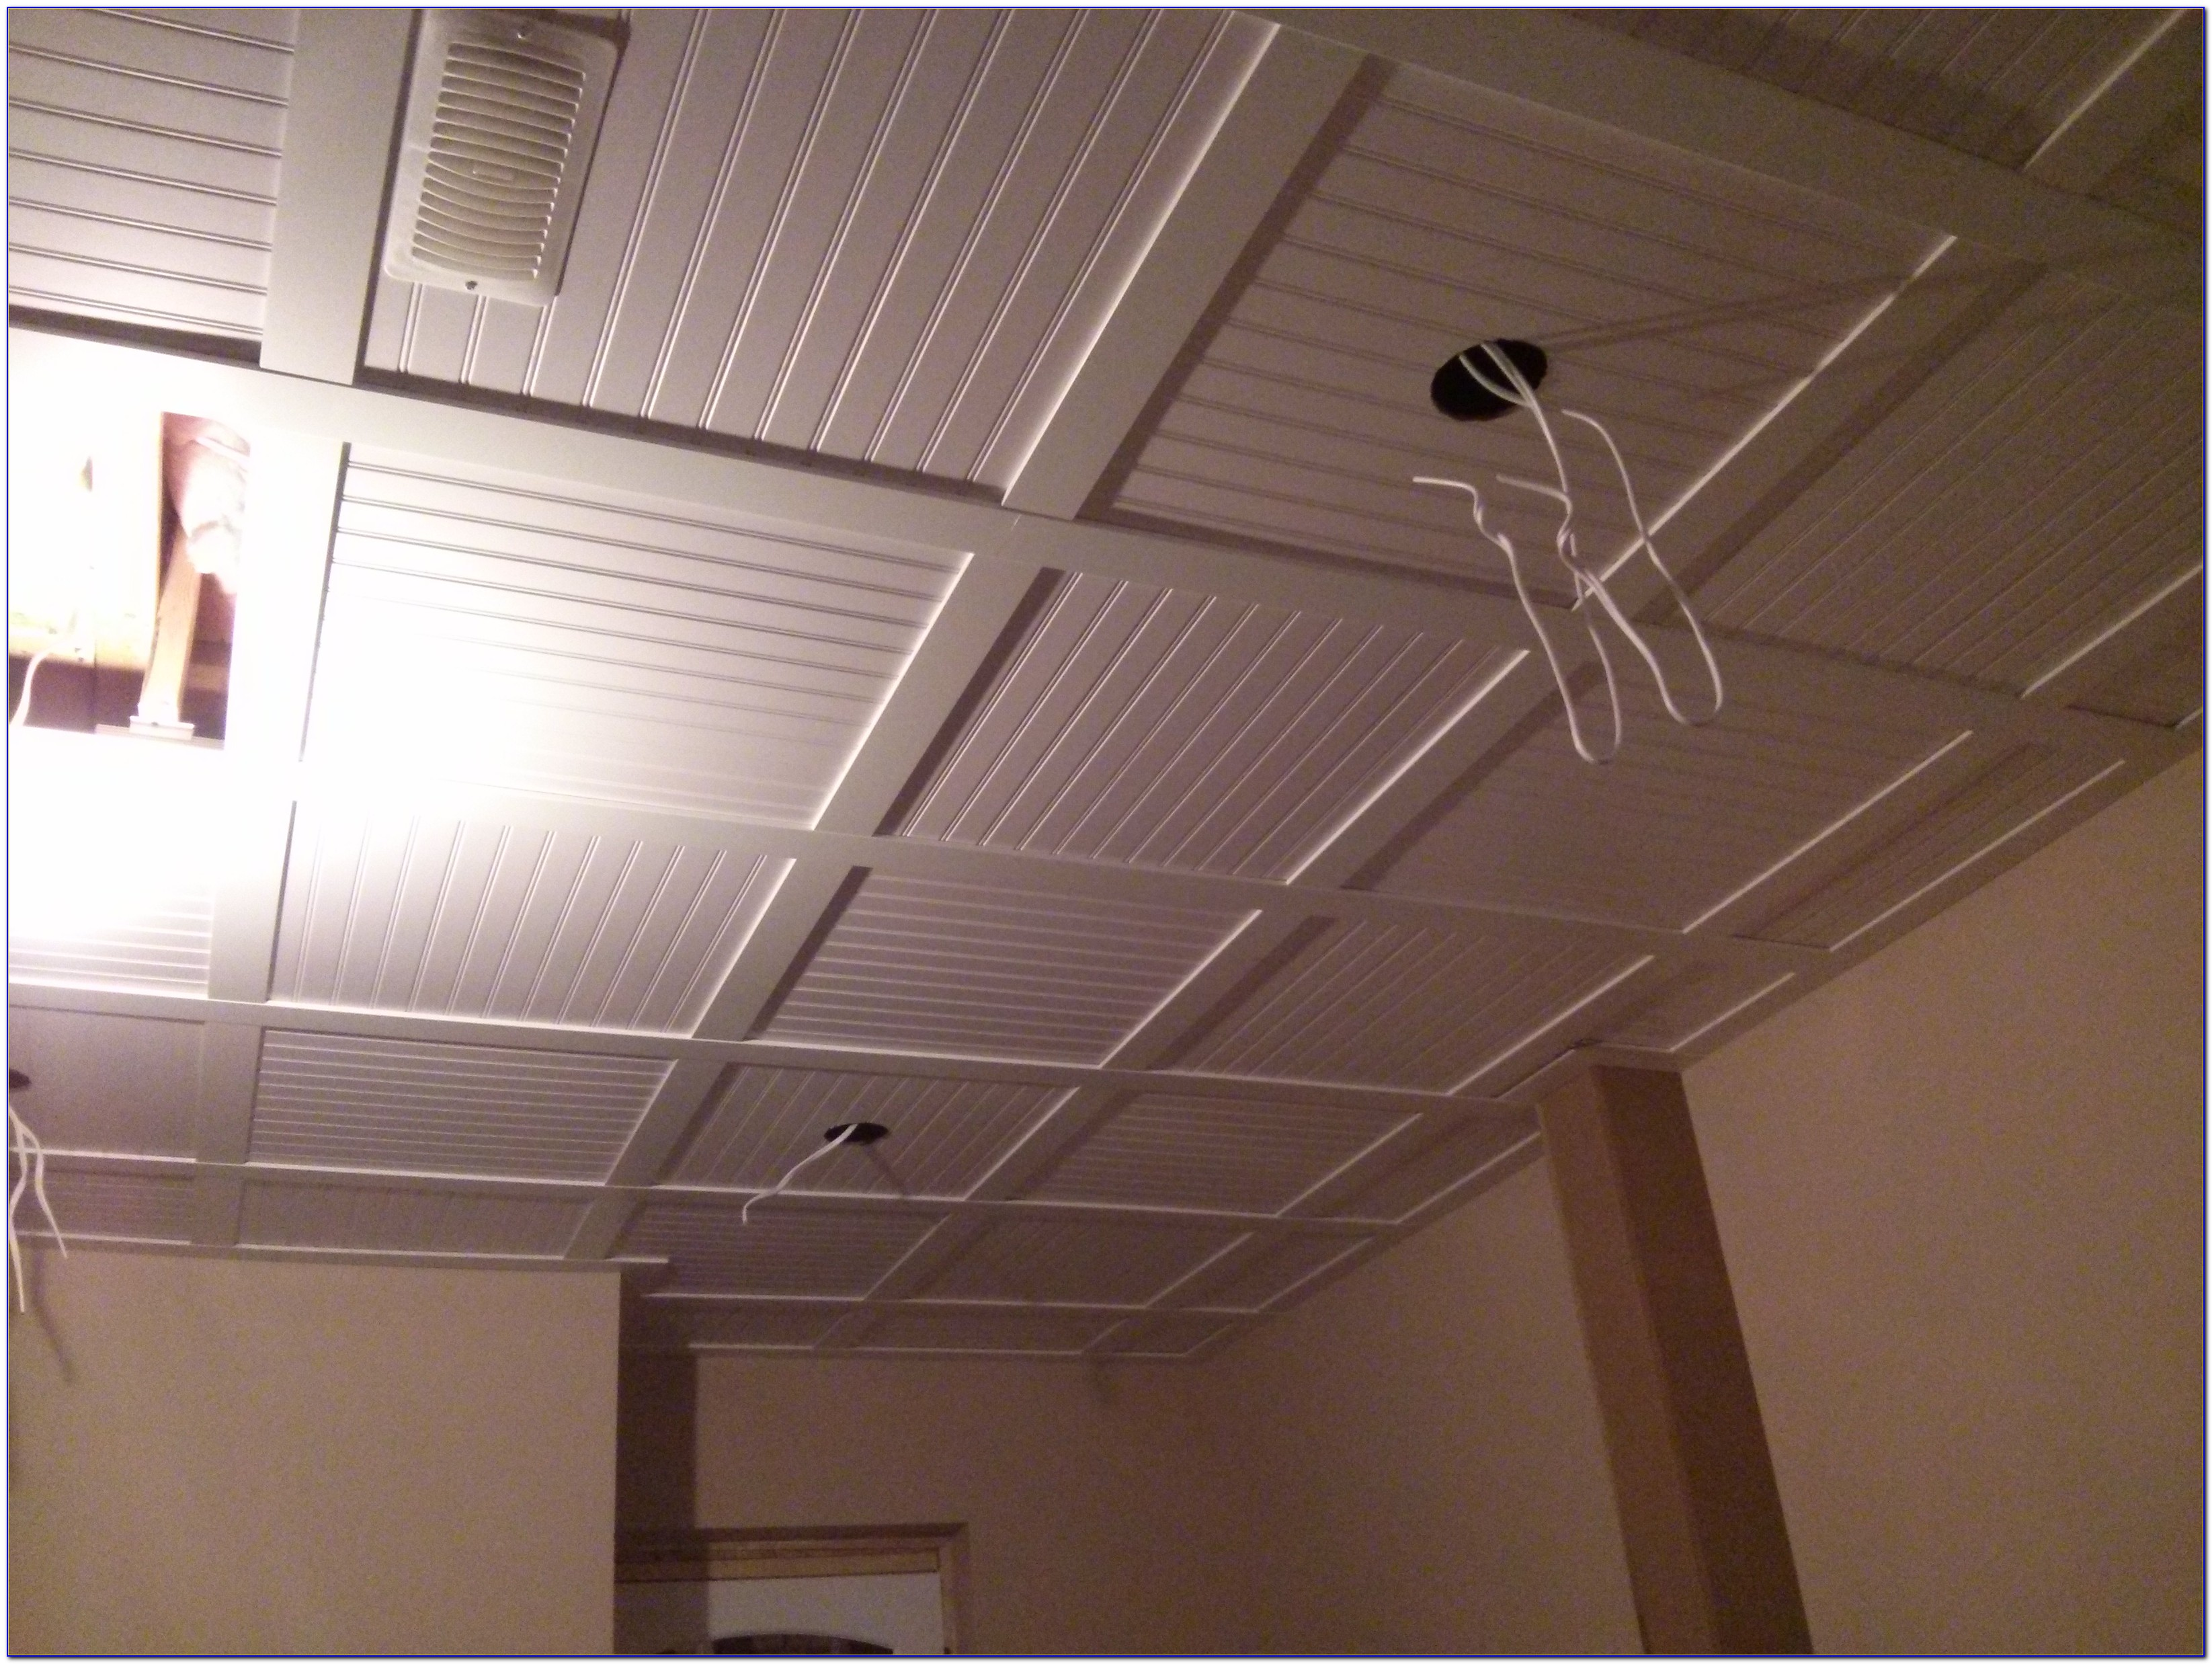 Decorative Ceiling Tiles For Drop Ceilings